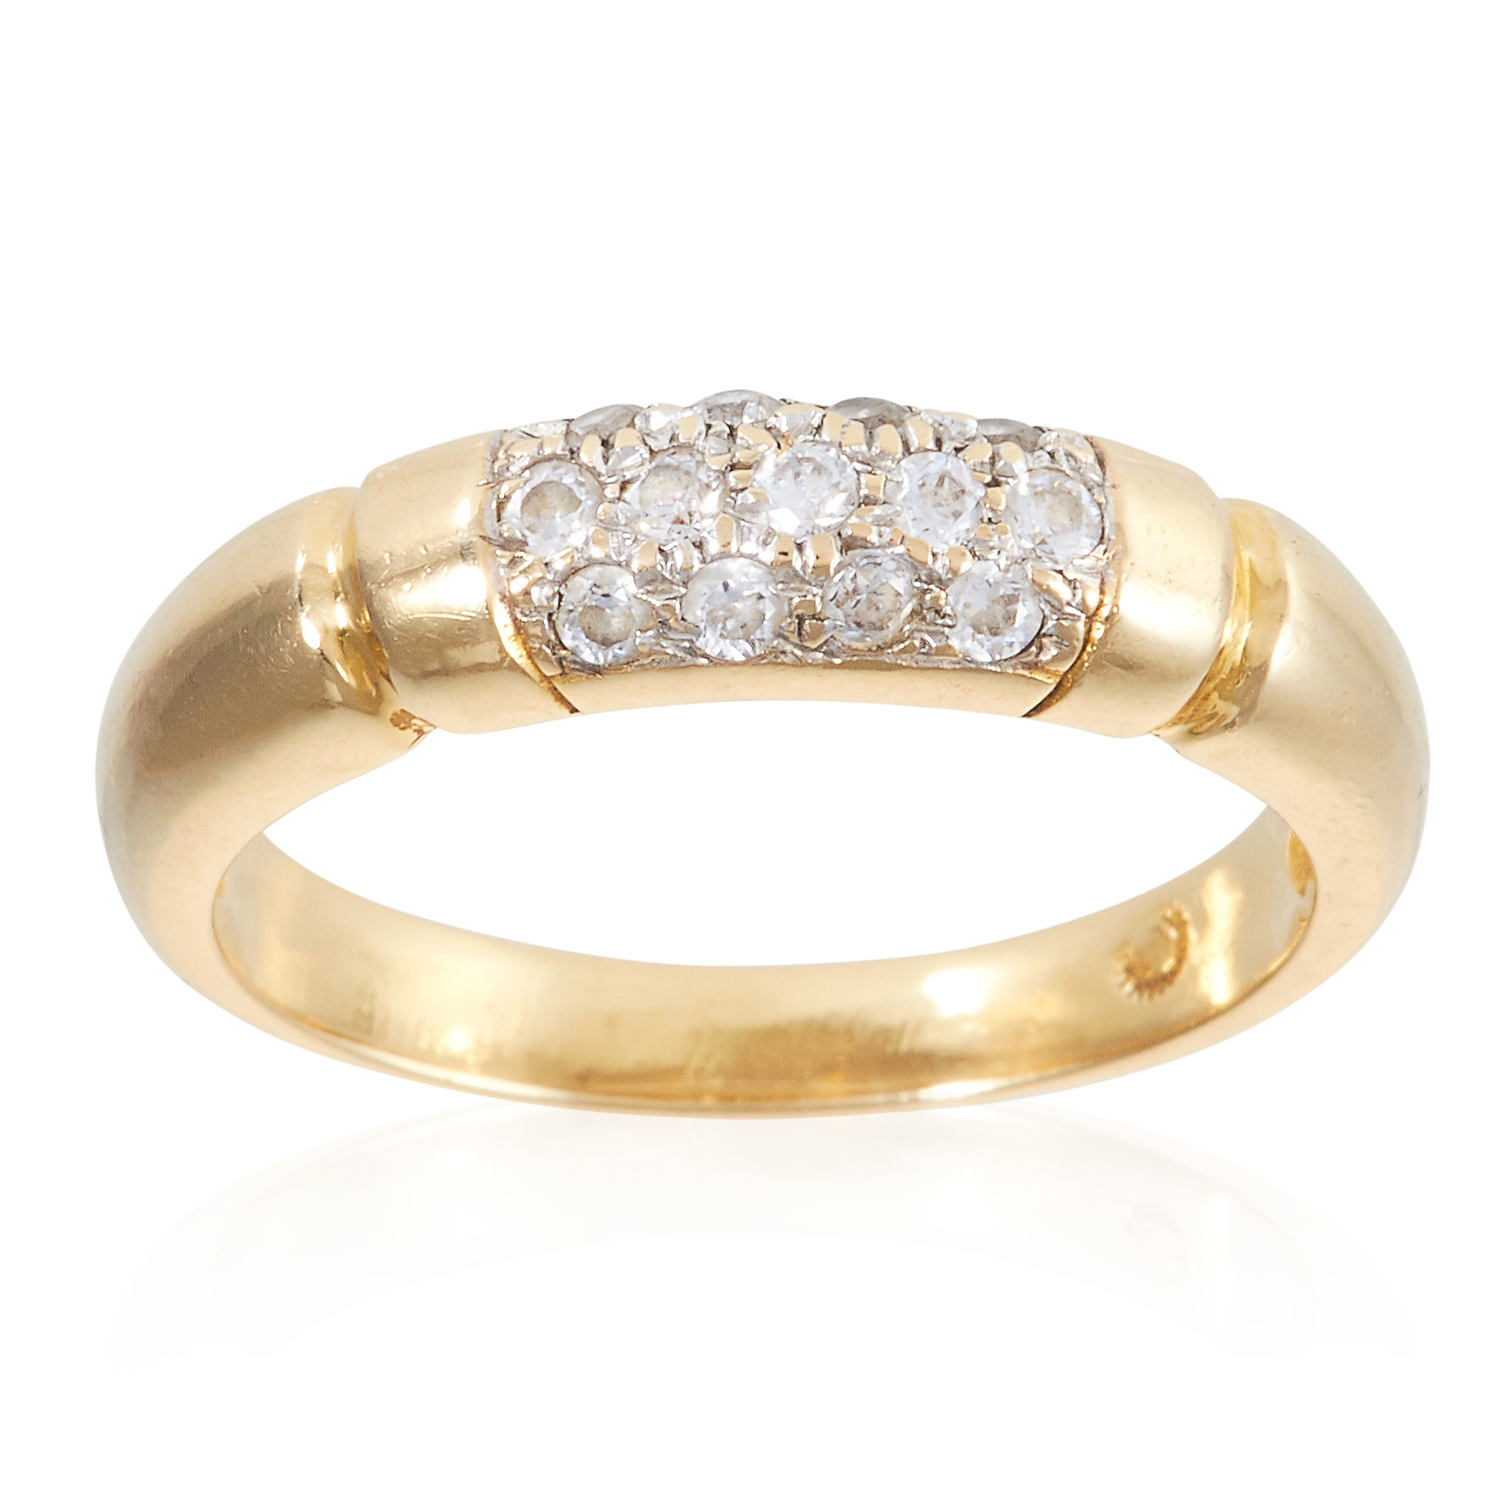 A PAVE SET CUBIC ZIRCONIA PANEL RING, in yellow gold, with grooved sides, set with round cut cubic